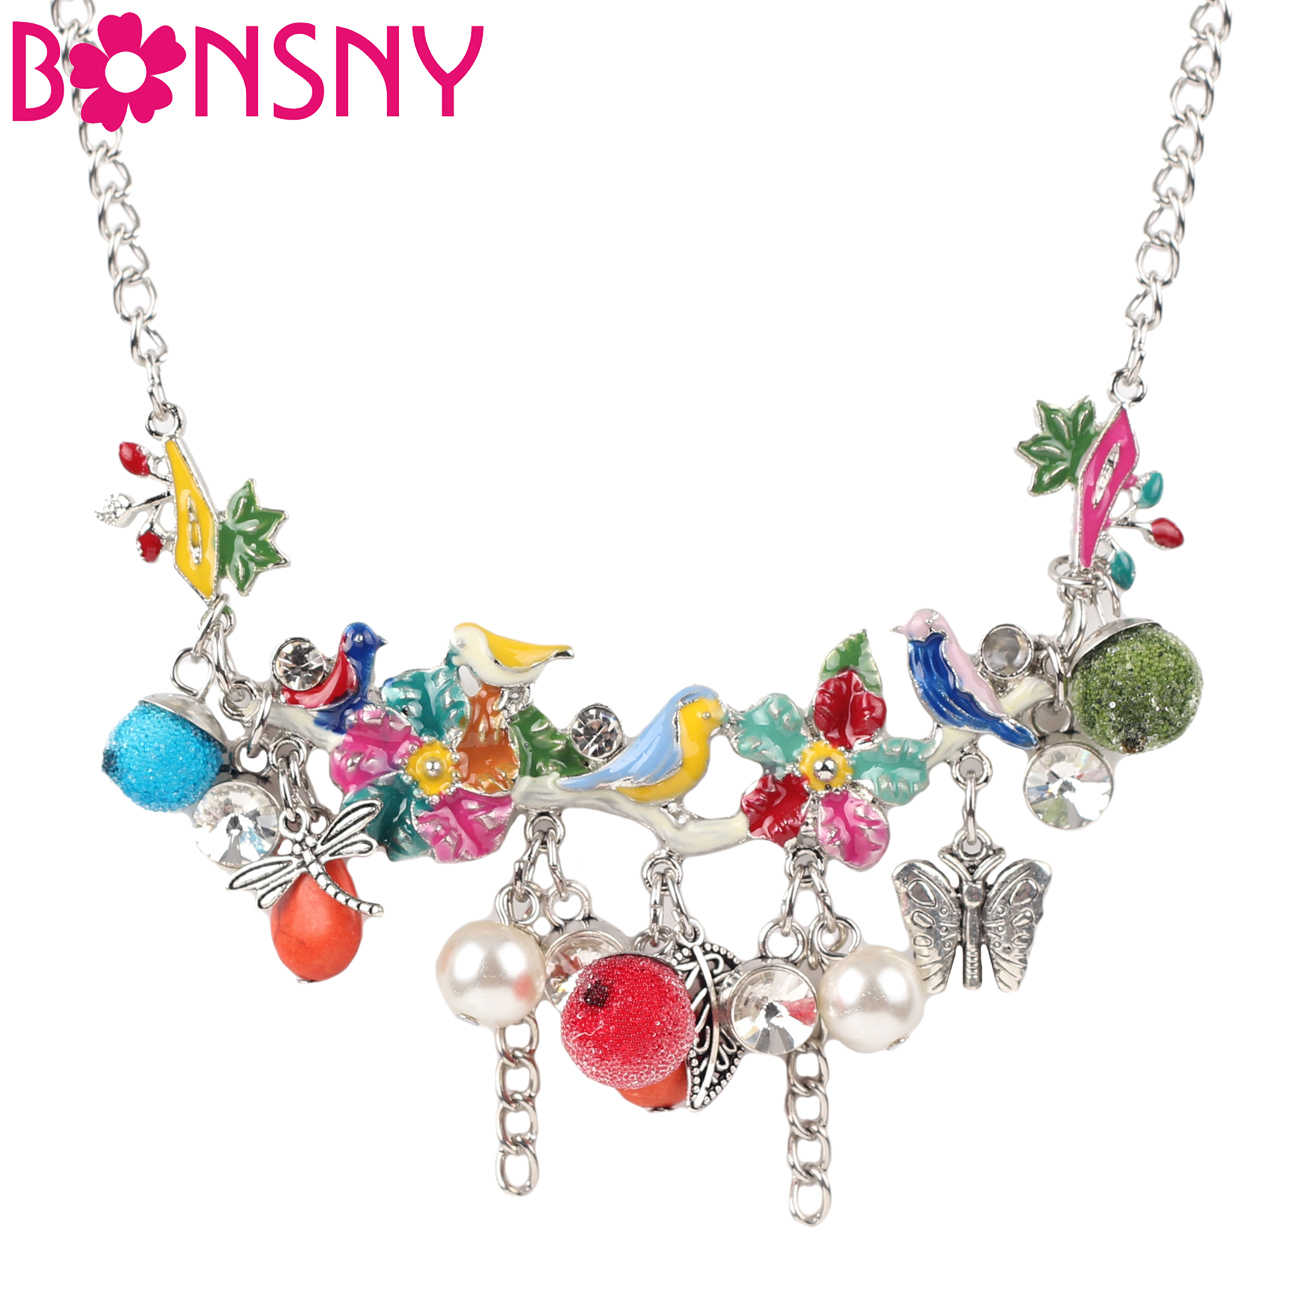 Bonsny Statement Enamel Flower Bird Fruit Tree Choker Necklace Bead Tassel Pendants Chain Collar Fashion Jewelry For Women